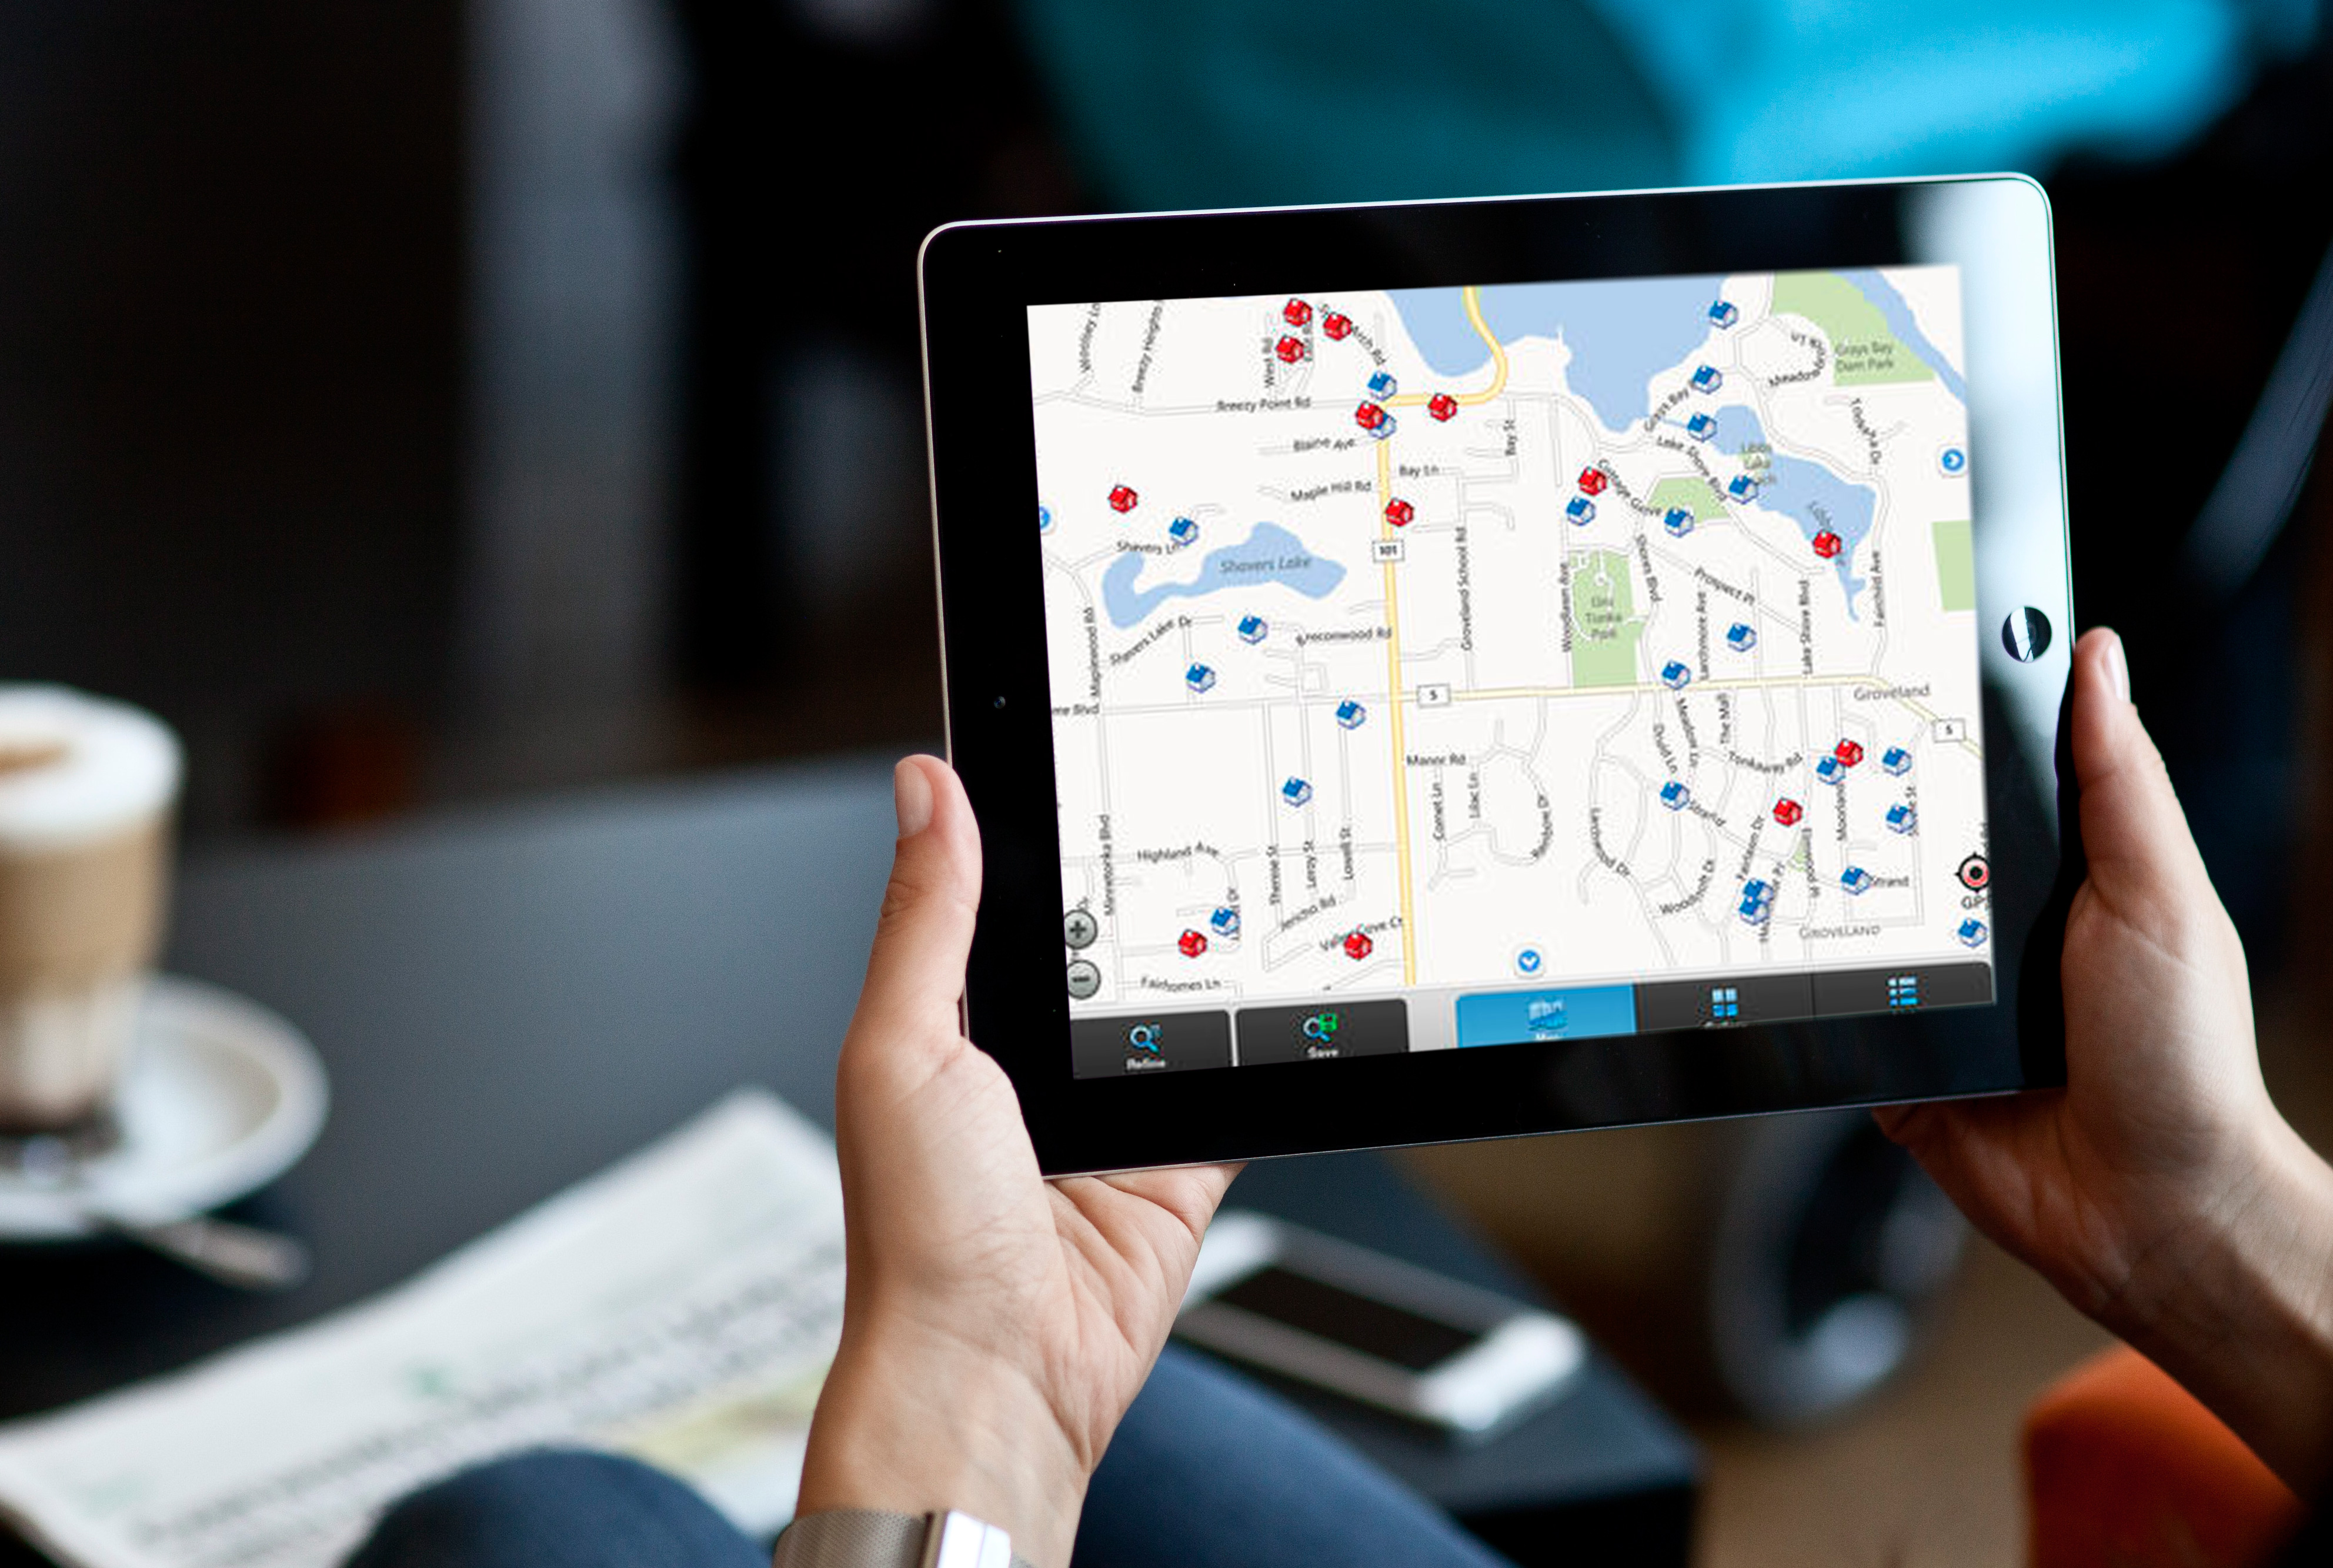 Choosing the right mobile app for your house hunting.